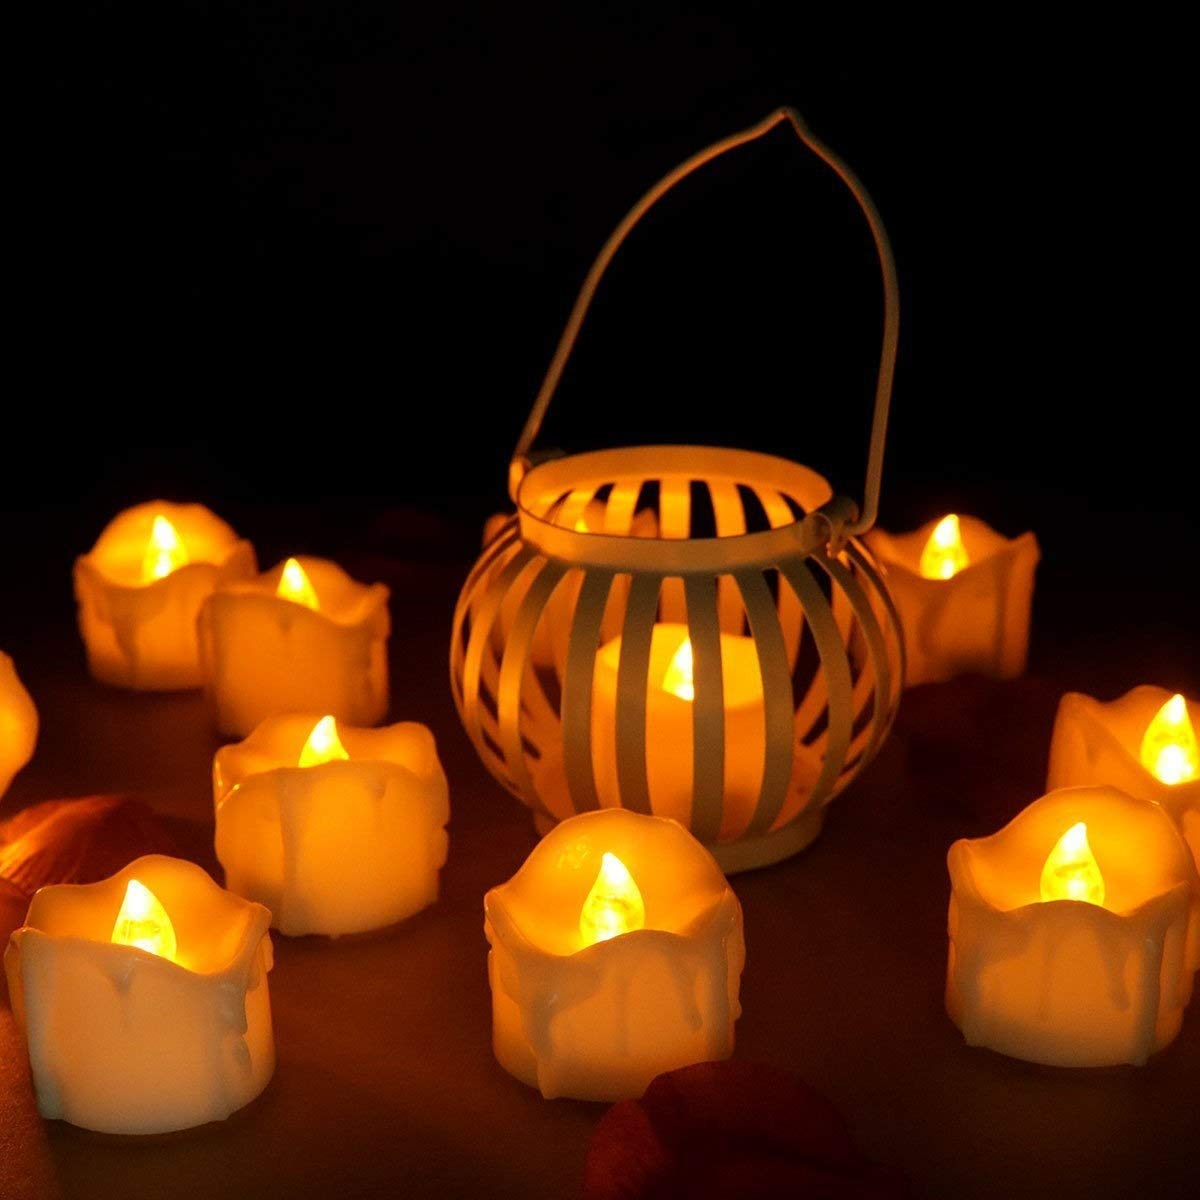 Cheap Flicker Light Circuit Find Deals On Adding A Easyflower Add Much Fun Led Candle Tea Light12 Pcs Lot Yellow